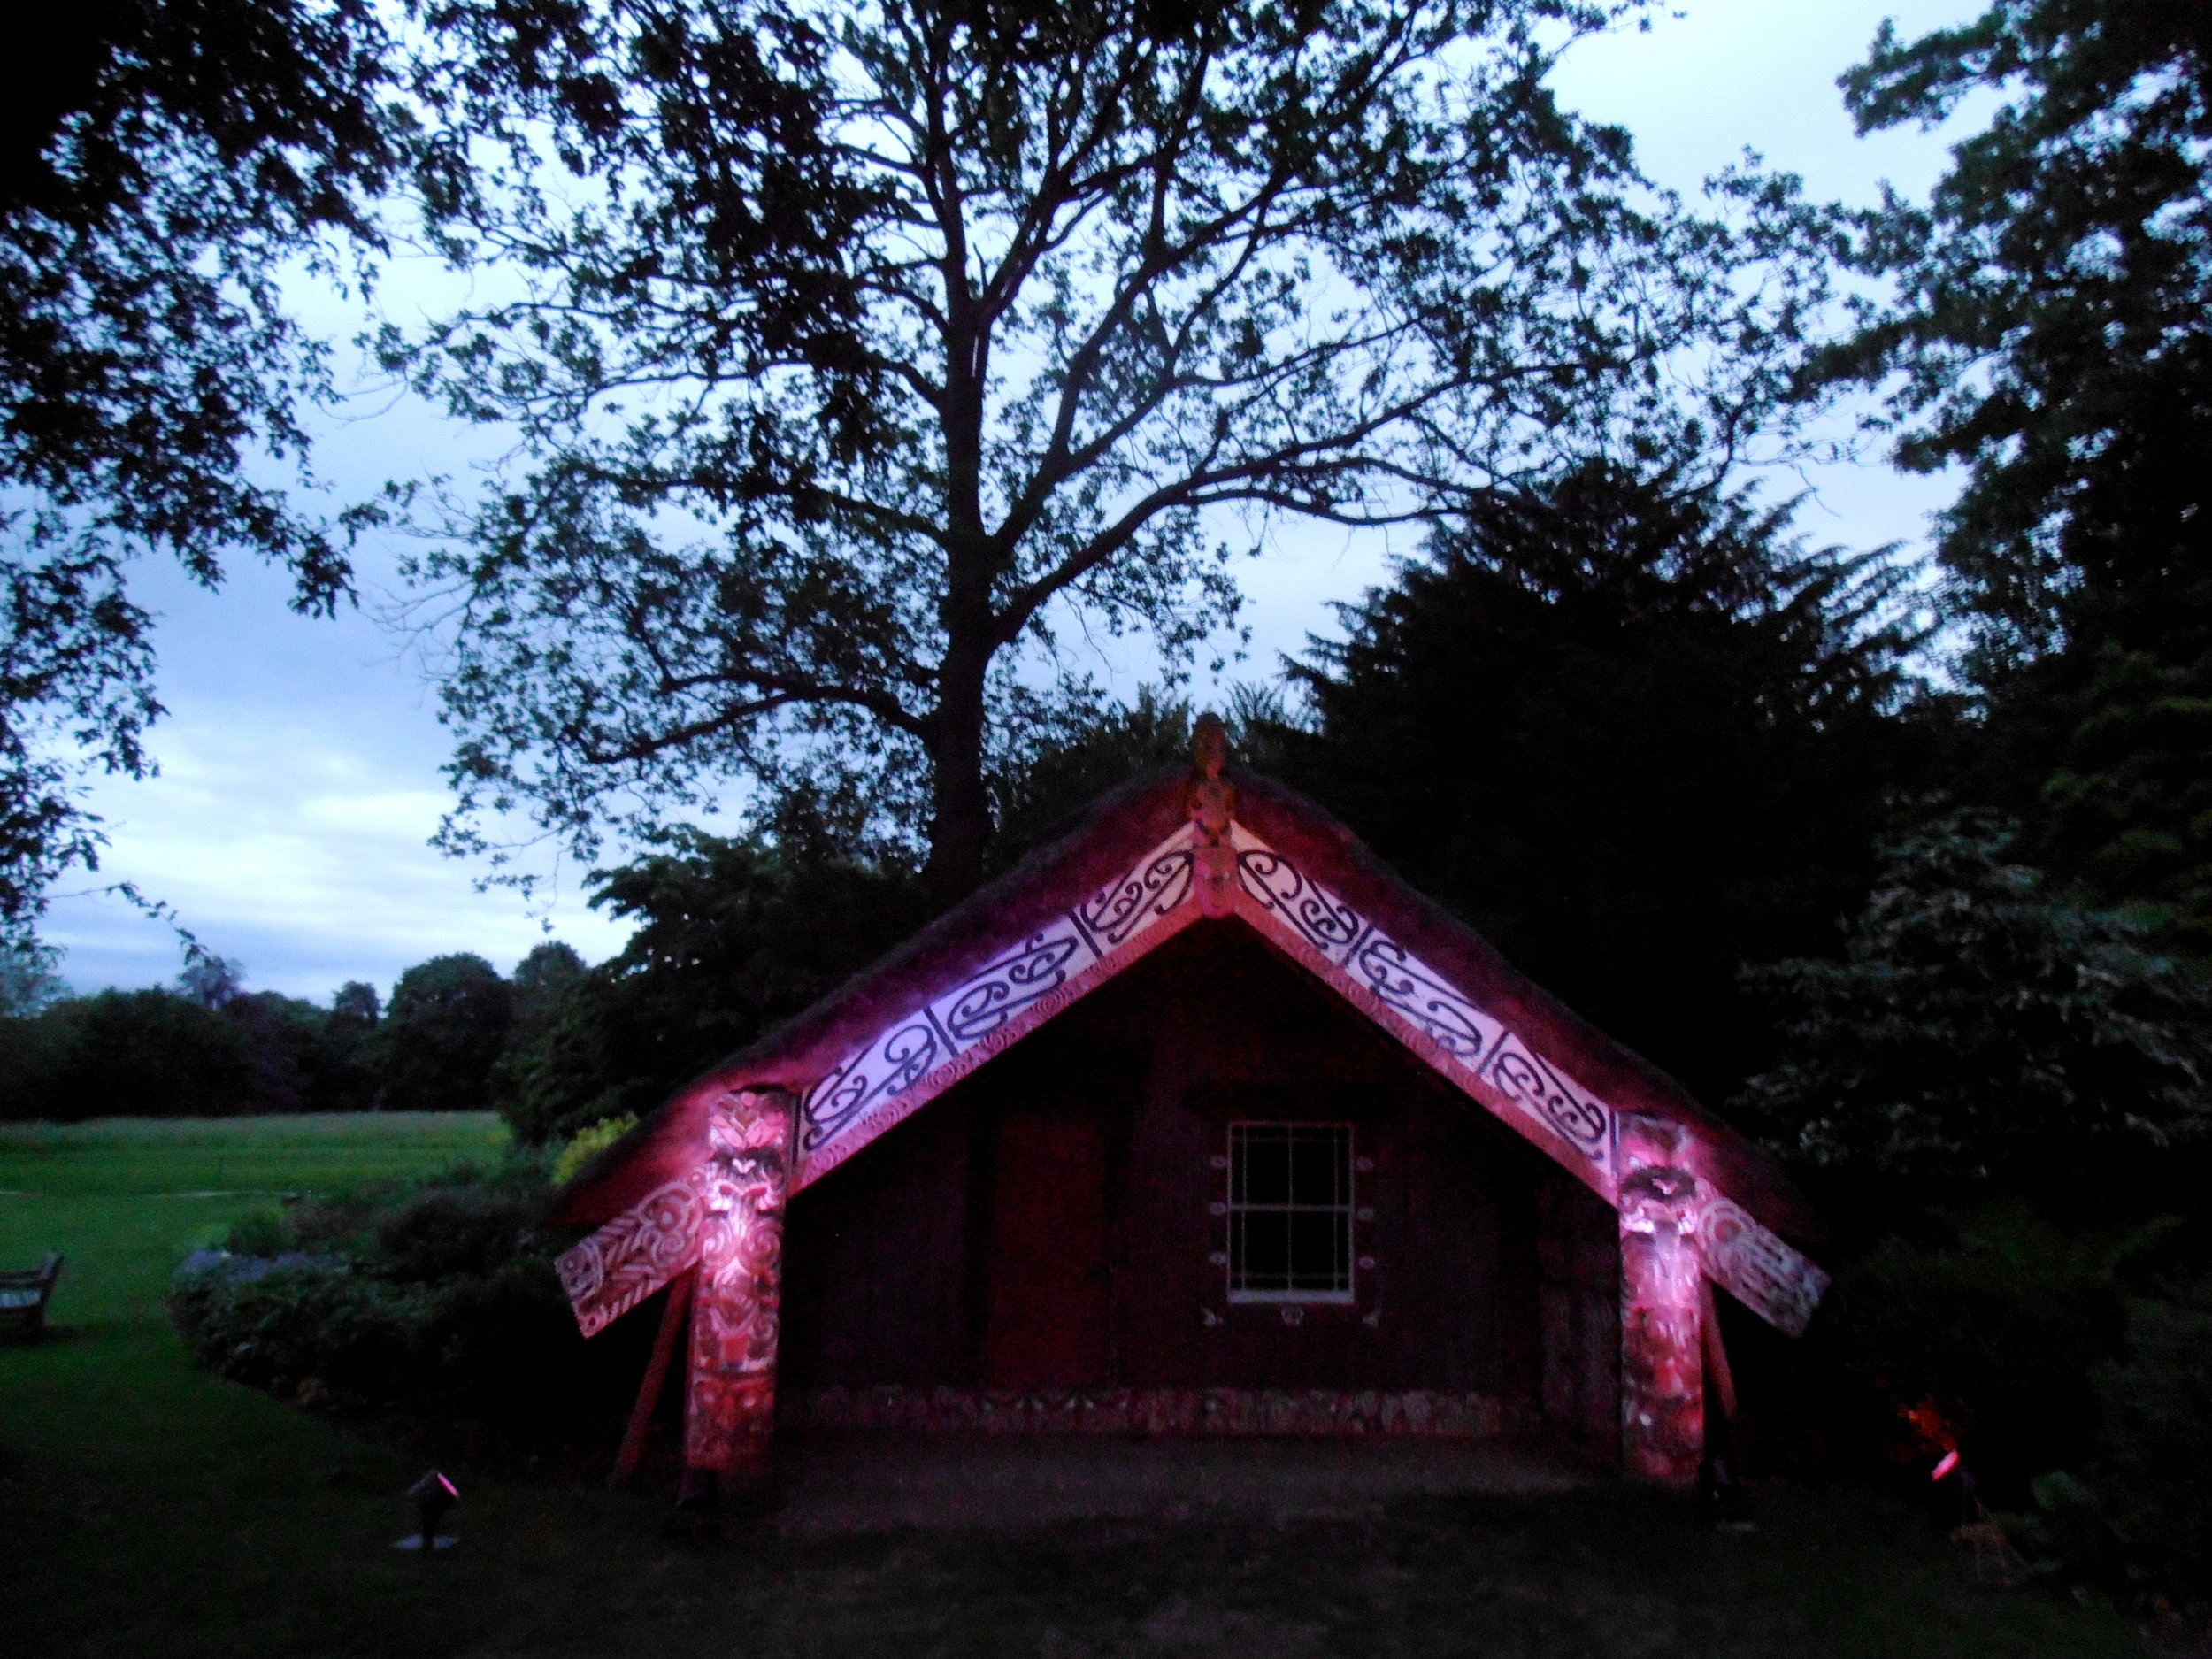 Light and sound installation at Hinemihi by Kura Puke and Stuart Foster, Massey University, New Zealand. 2014 Photo R. O'Callaghan